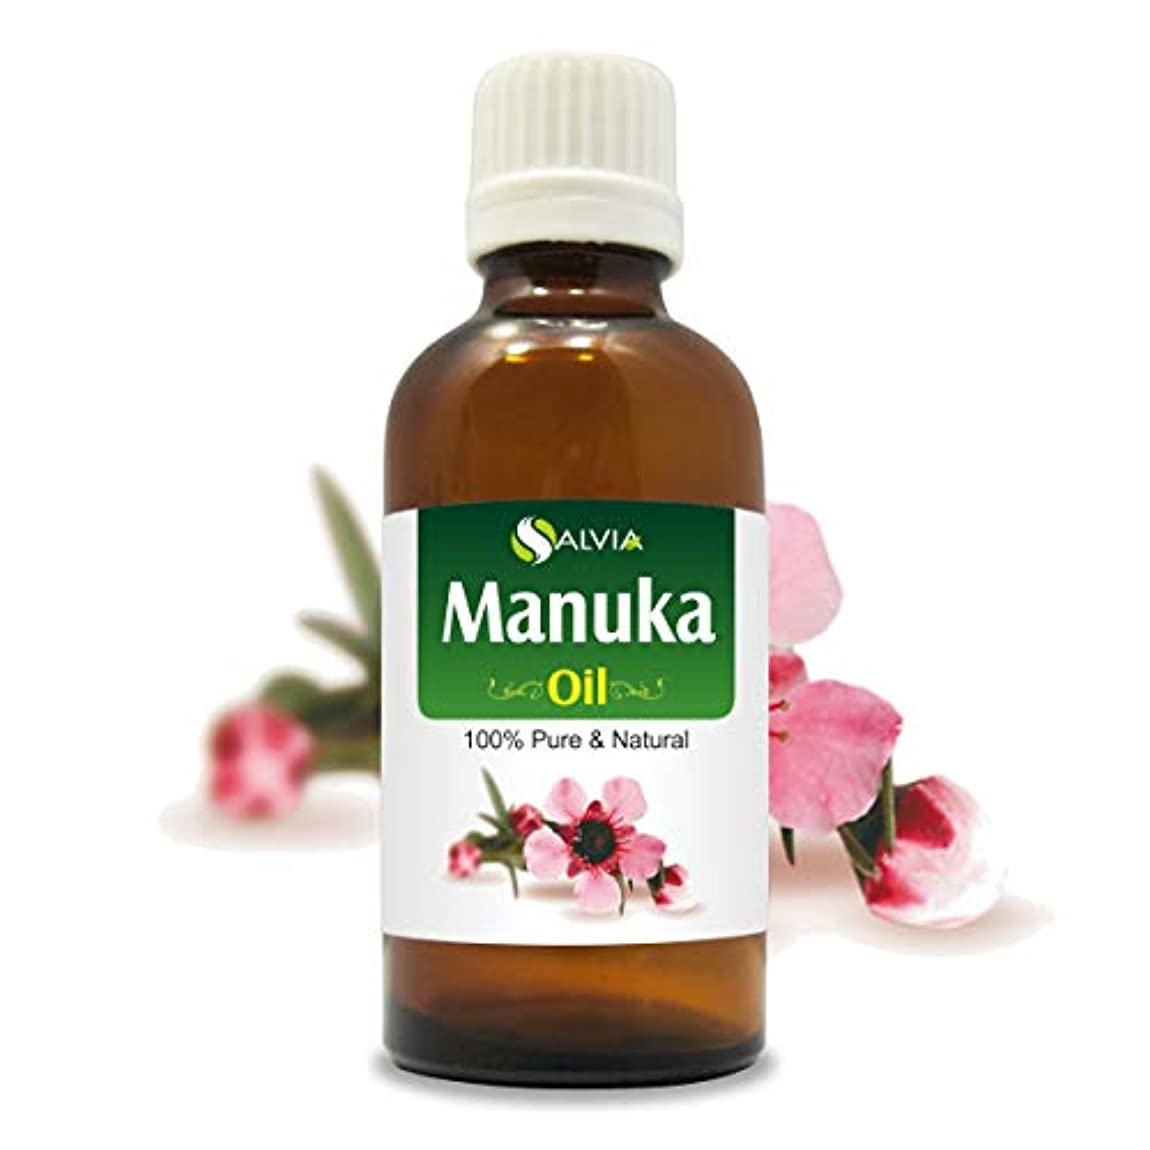 マージレオナルドダ影響Manuka Oil (Leptospermum scoparium) 100% Natural Pure Undiluted Uncut Essential Oil 50ml